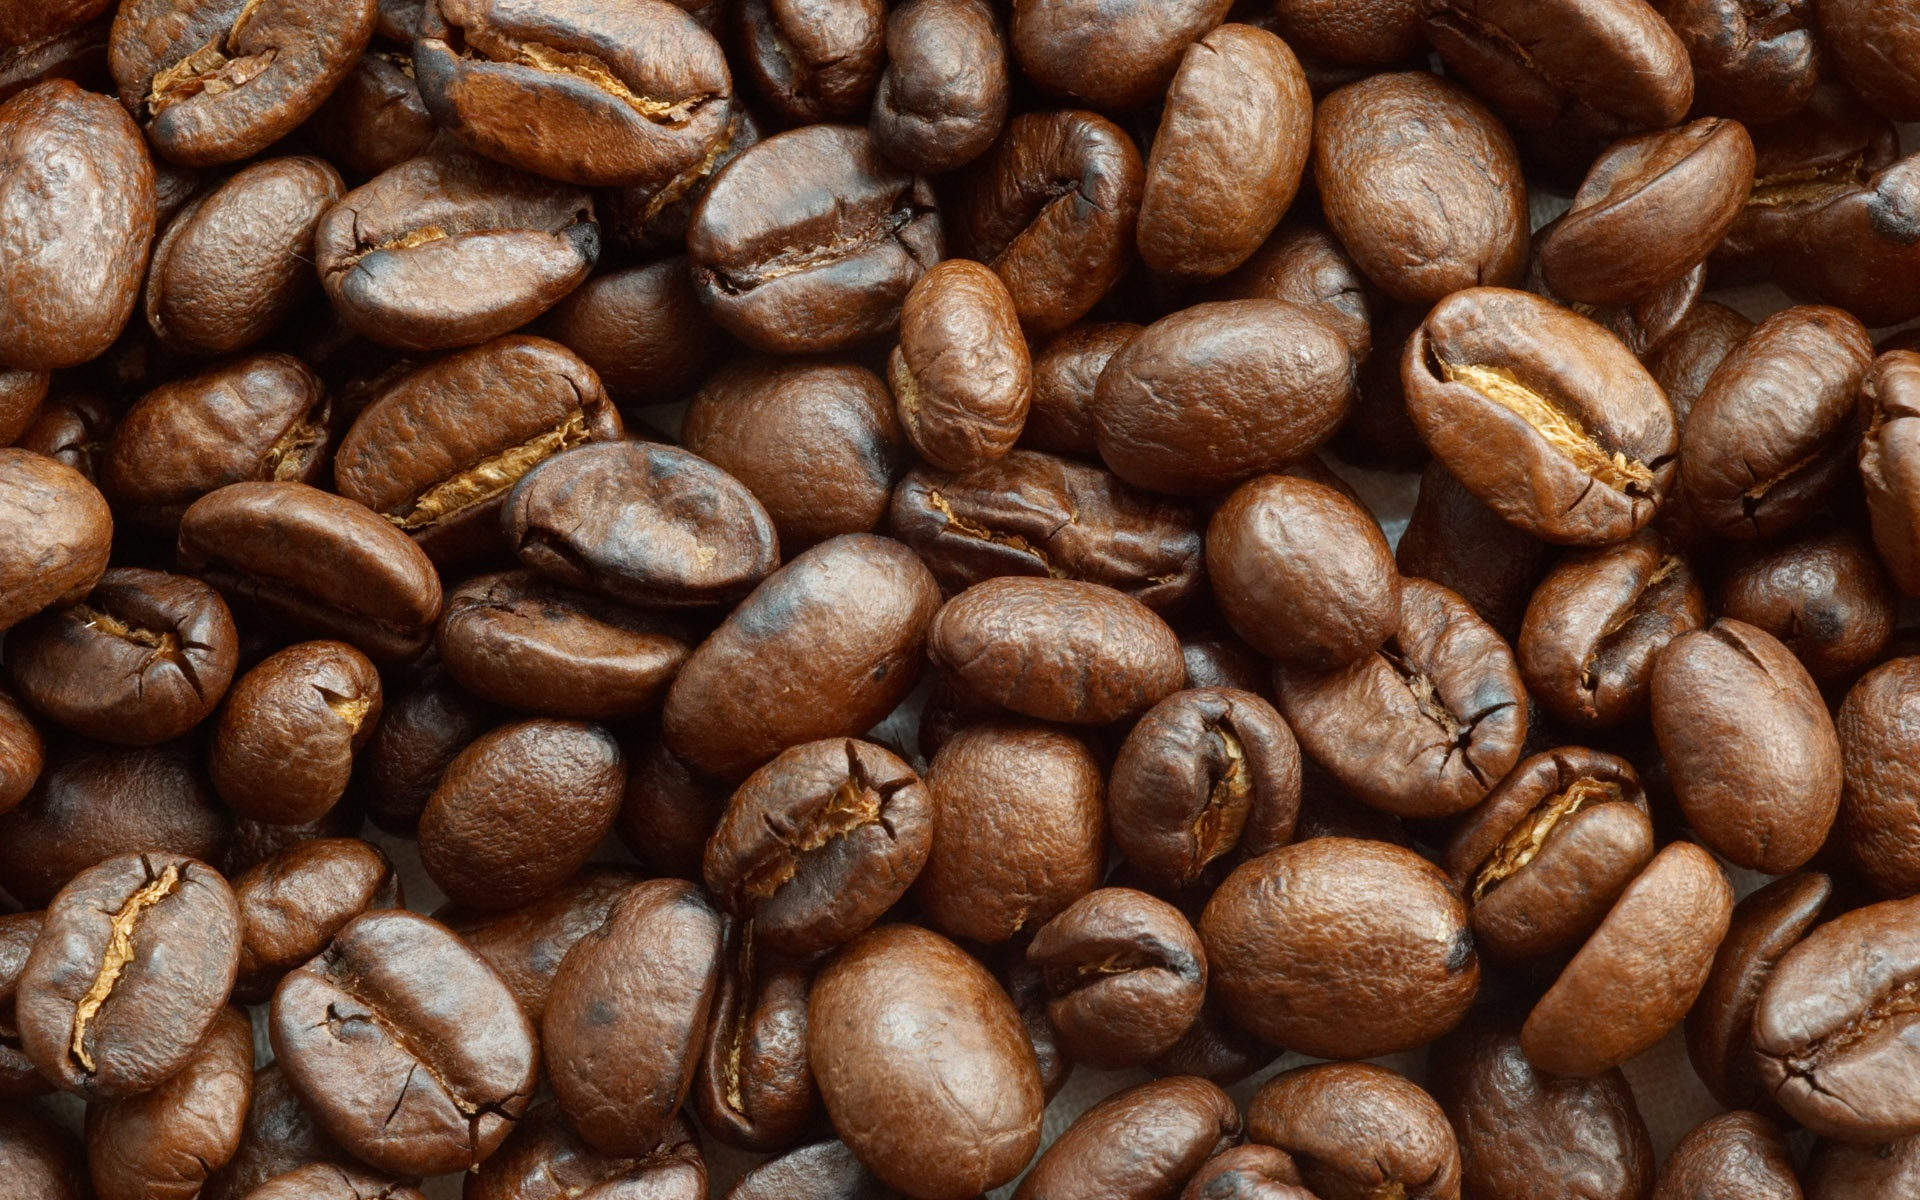 How To Produce Stronger Cup Of Coffee